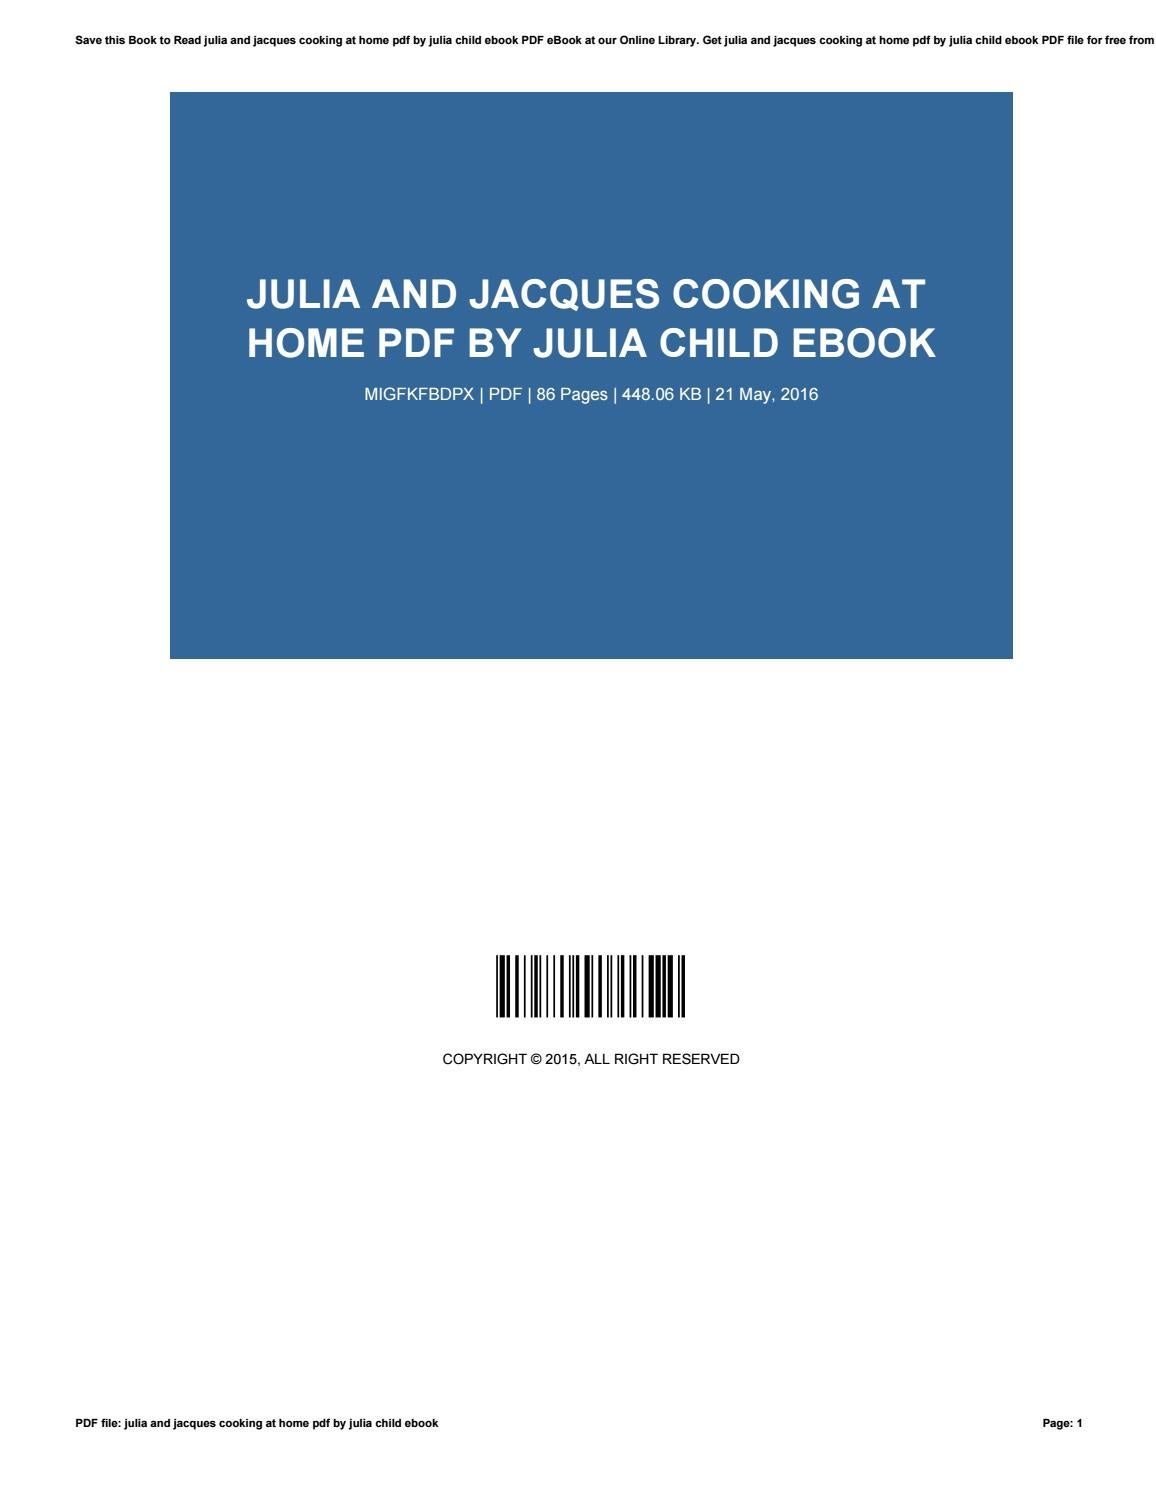 I have the right to be a child ebook array julia and jacques cooking at home pdf by julia child ebook by rh issuu fandeluxe Images